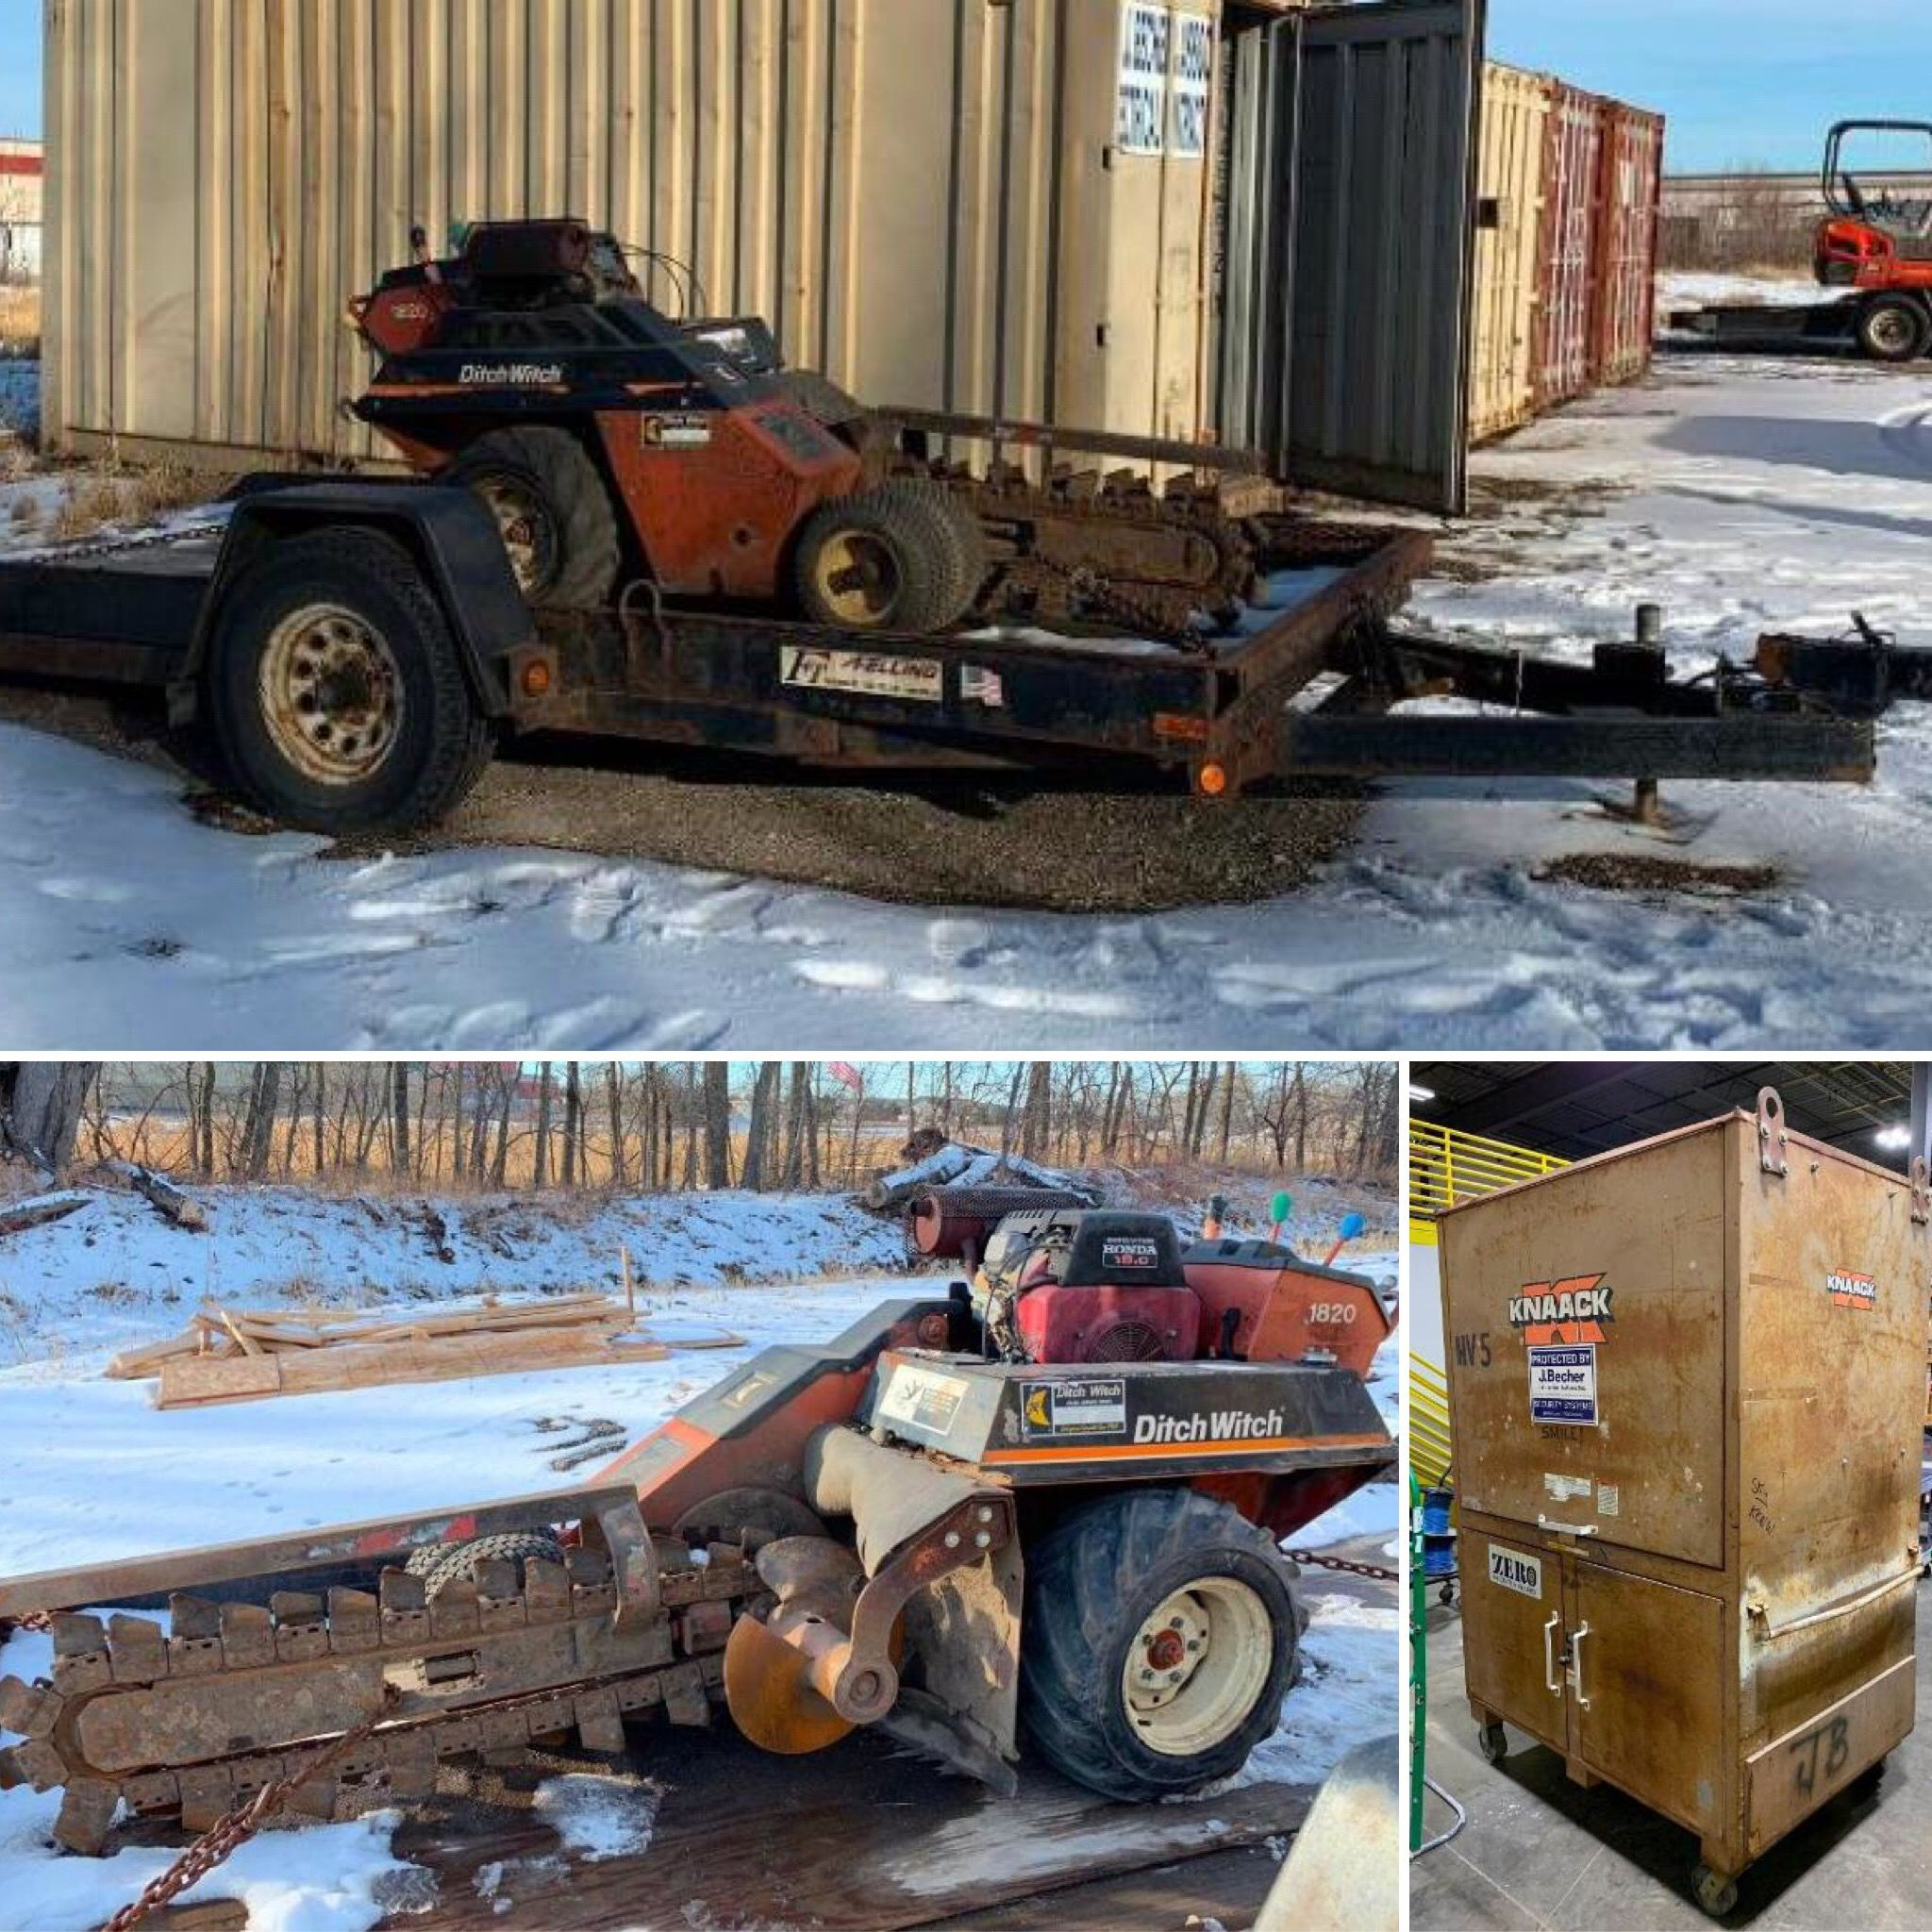 medium resolution of auction complete check out this feller tilt trailer ditch witch 1820 and knaack gang box bid online today at www bid 2 buy com naapro auctionswork